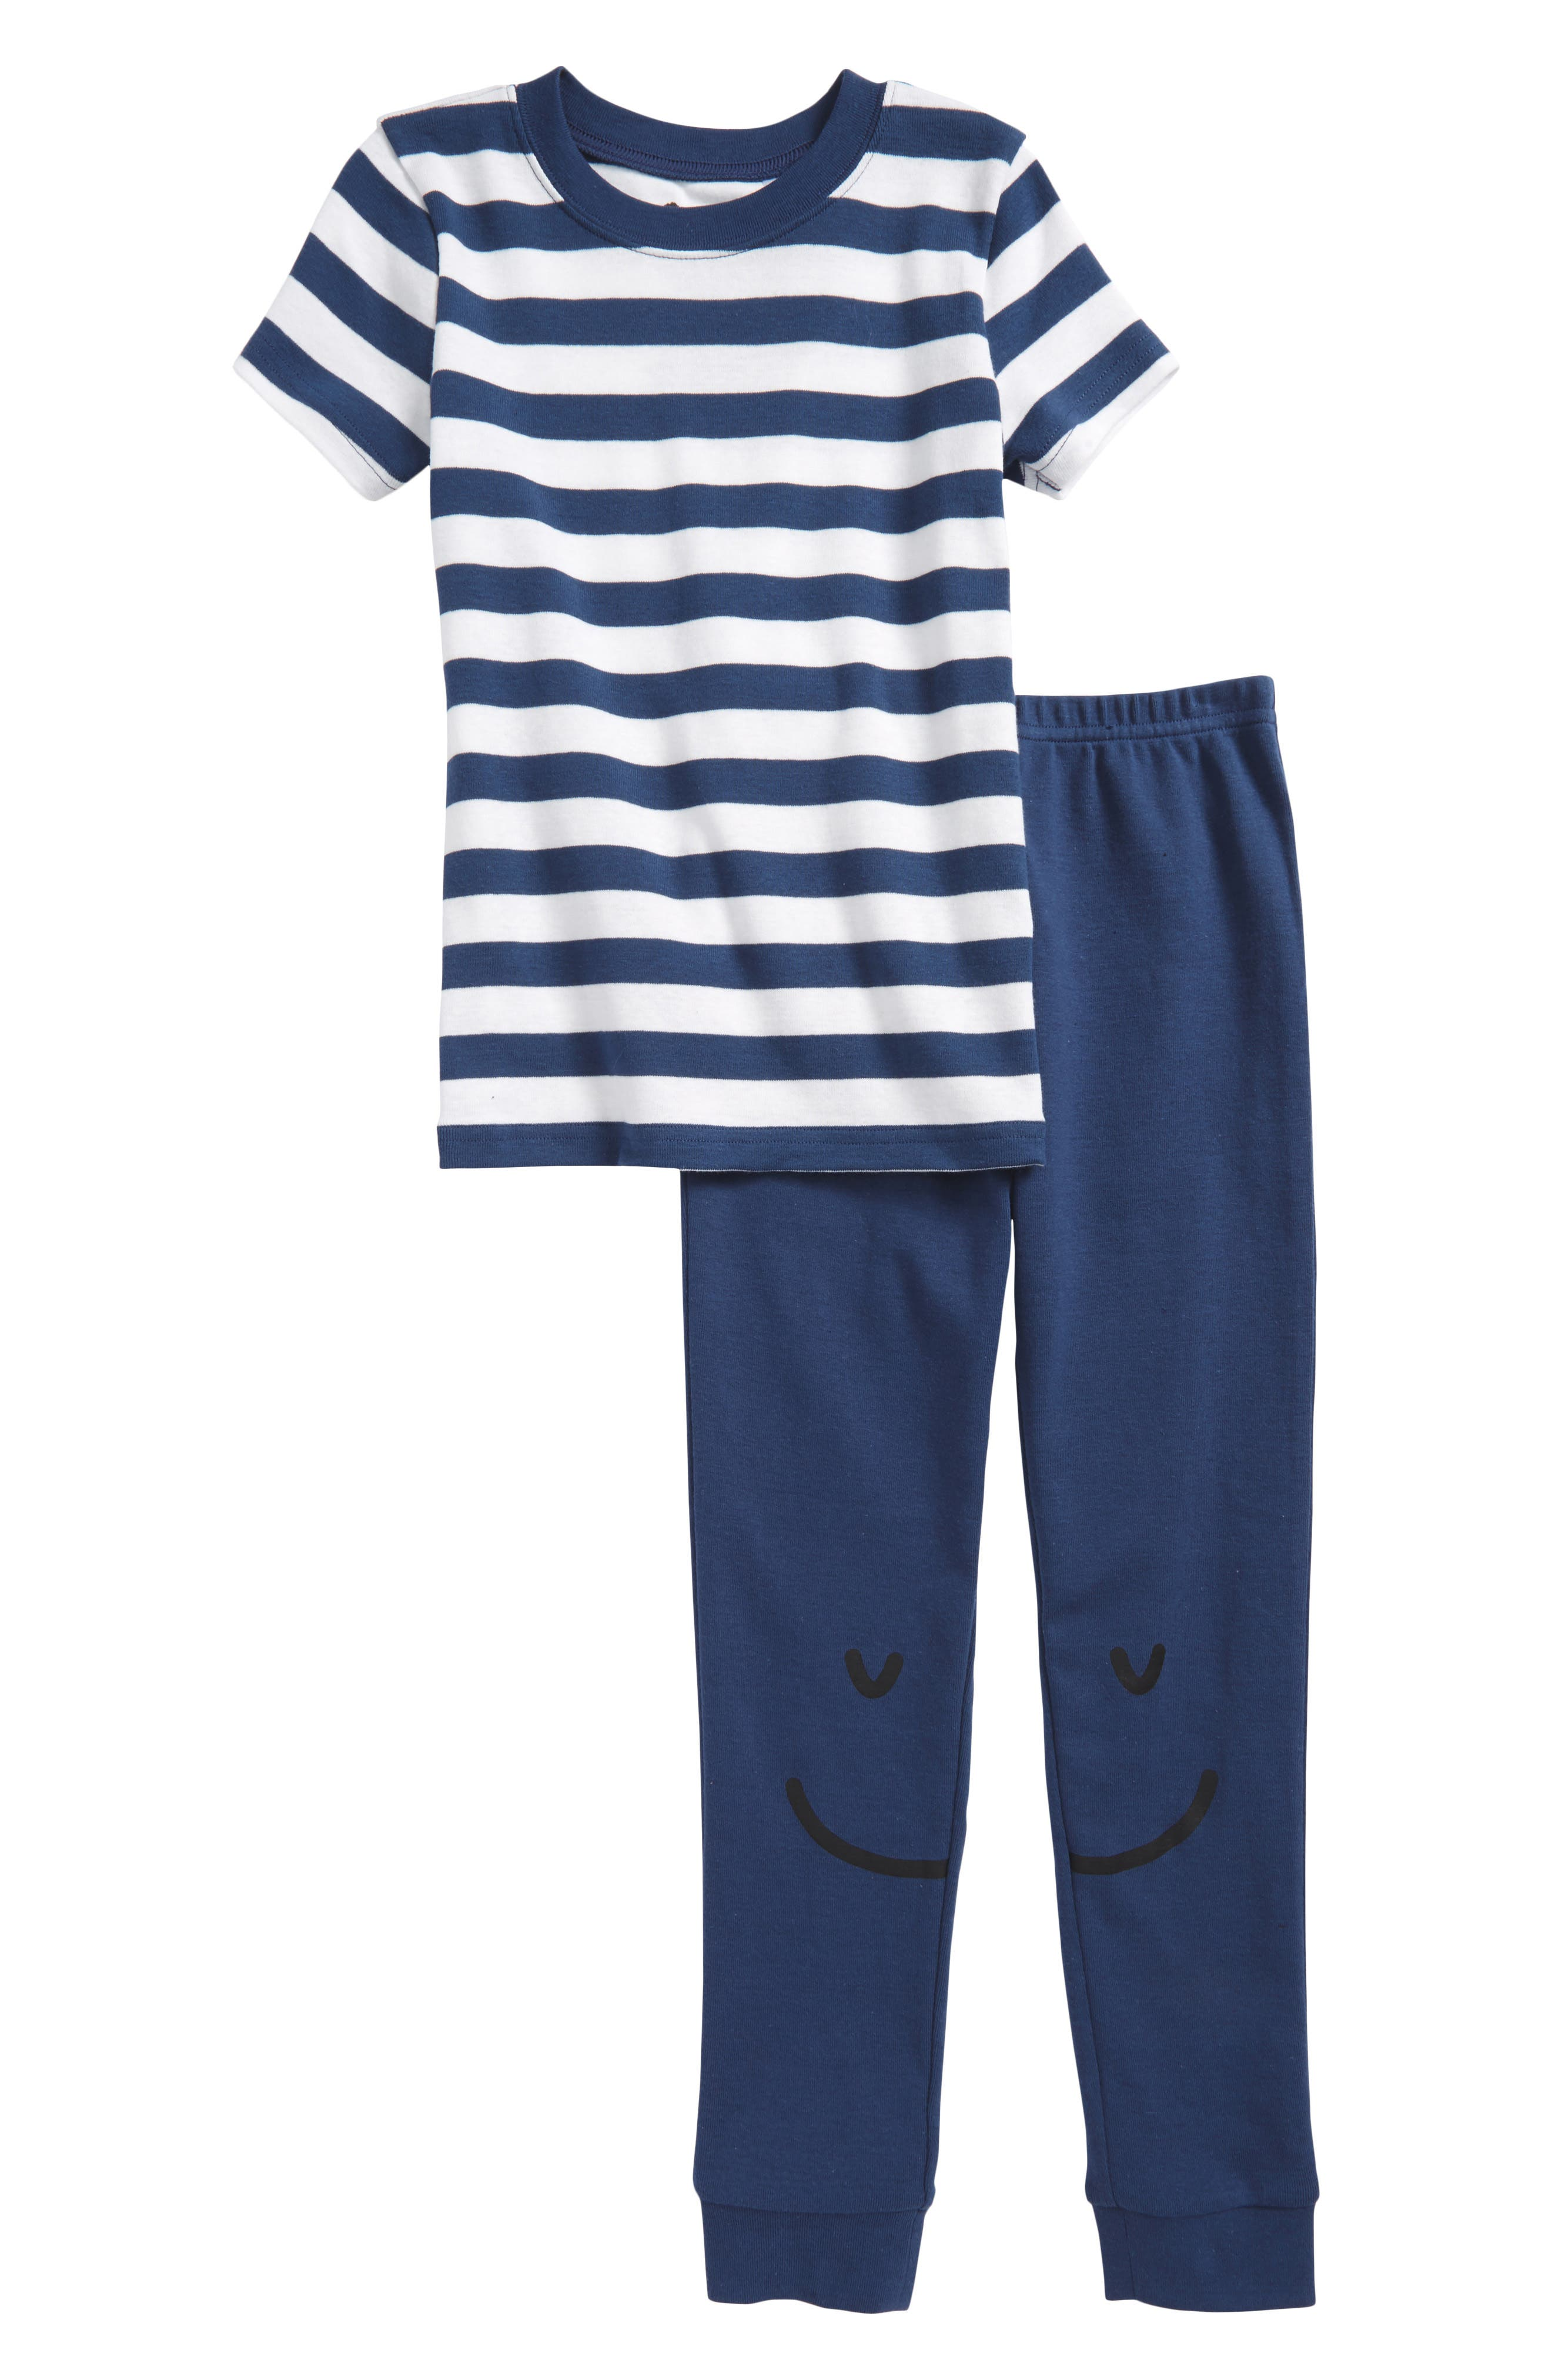 Print Fitted Two-Piece Pajamas,                         Main,                         color, Navy Denim- White Stripe